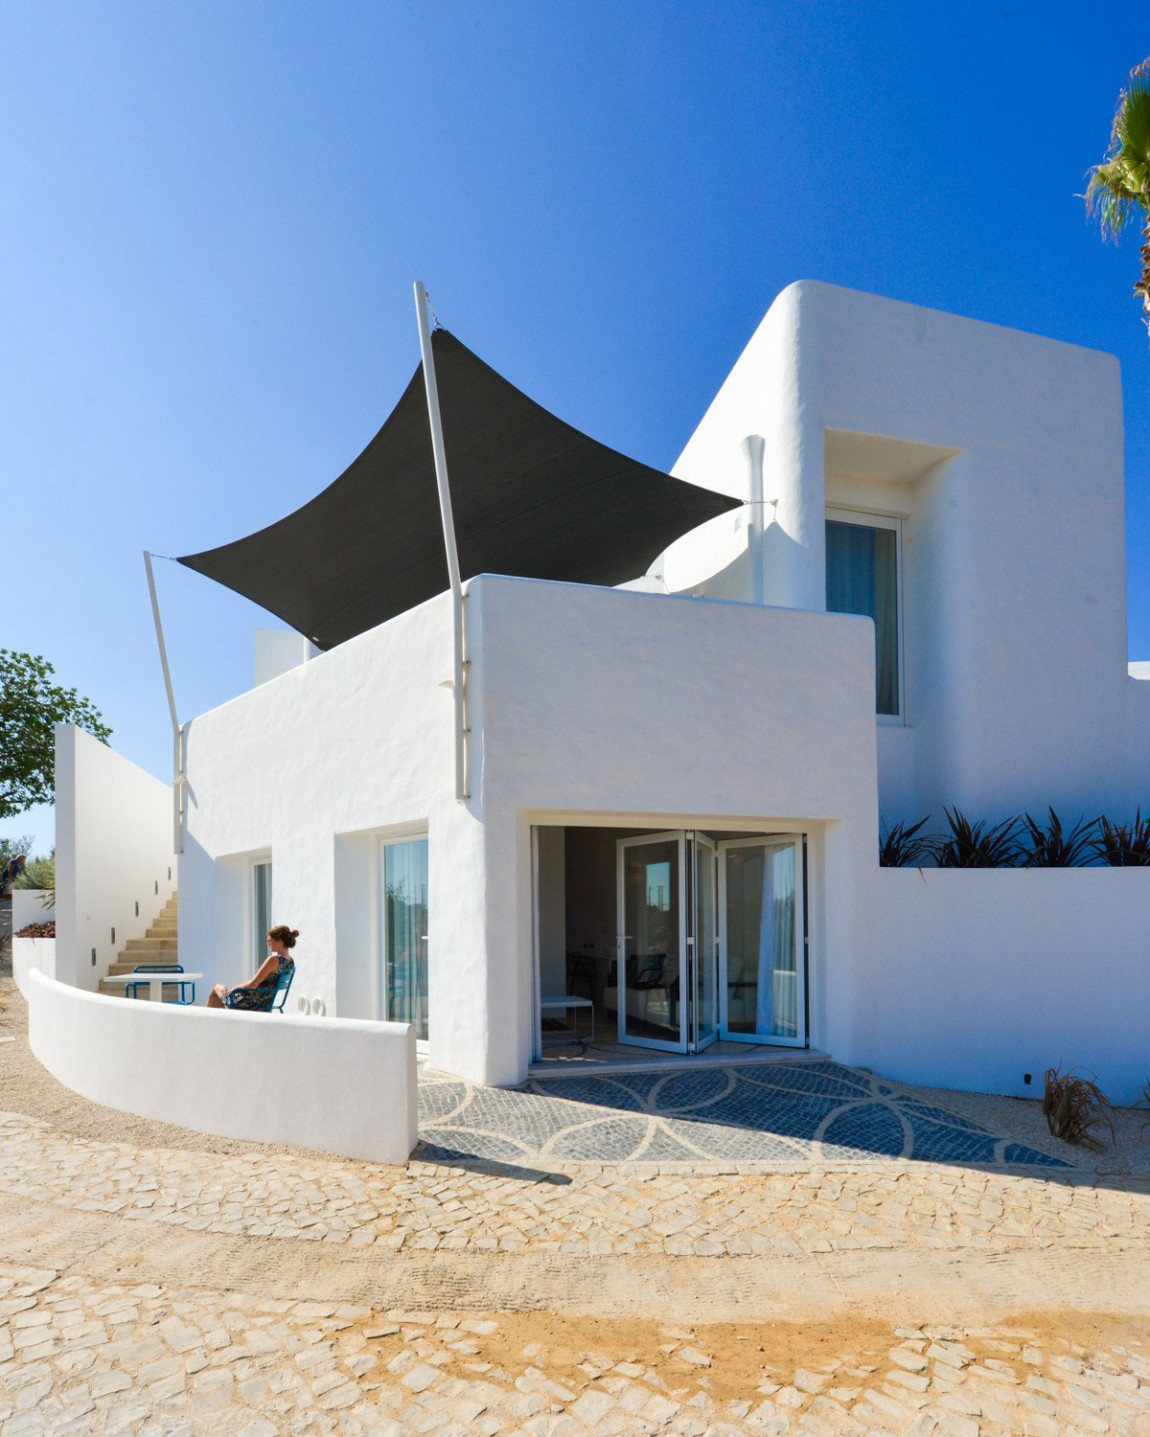 Organic Architecture With Contemporary Features In Carvoeiro, Portugal